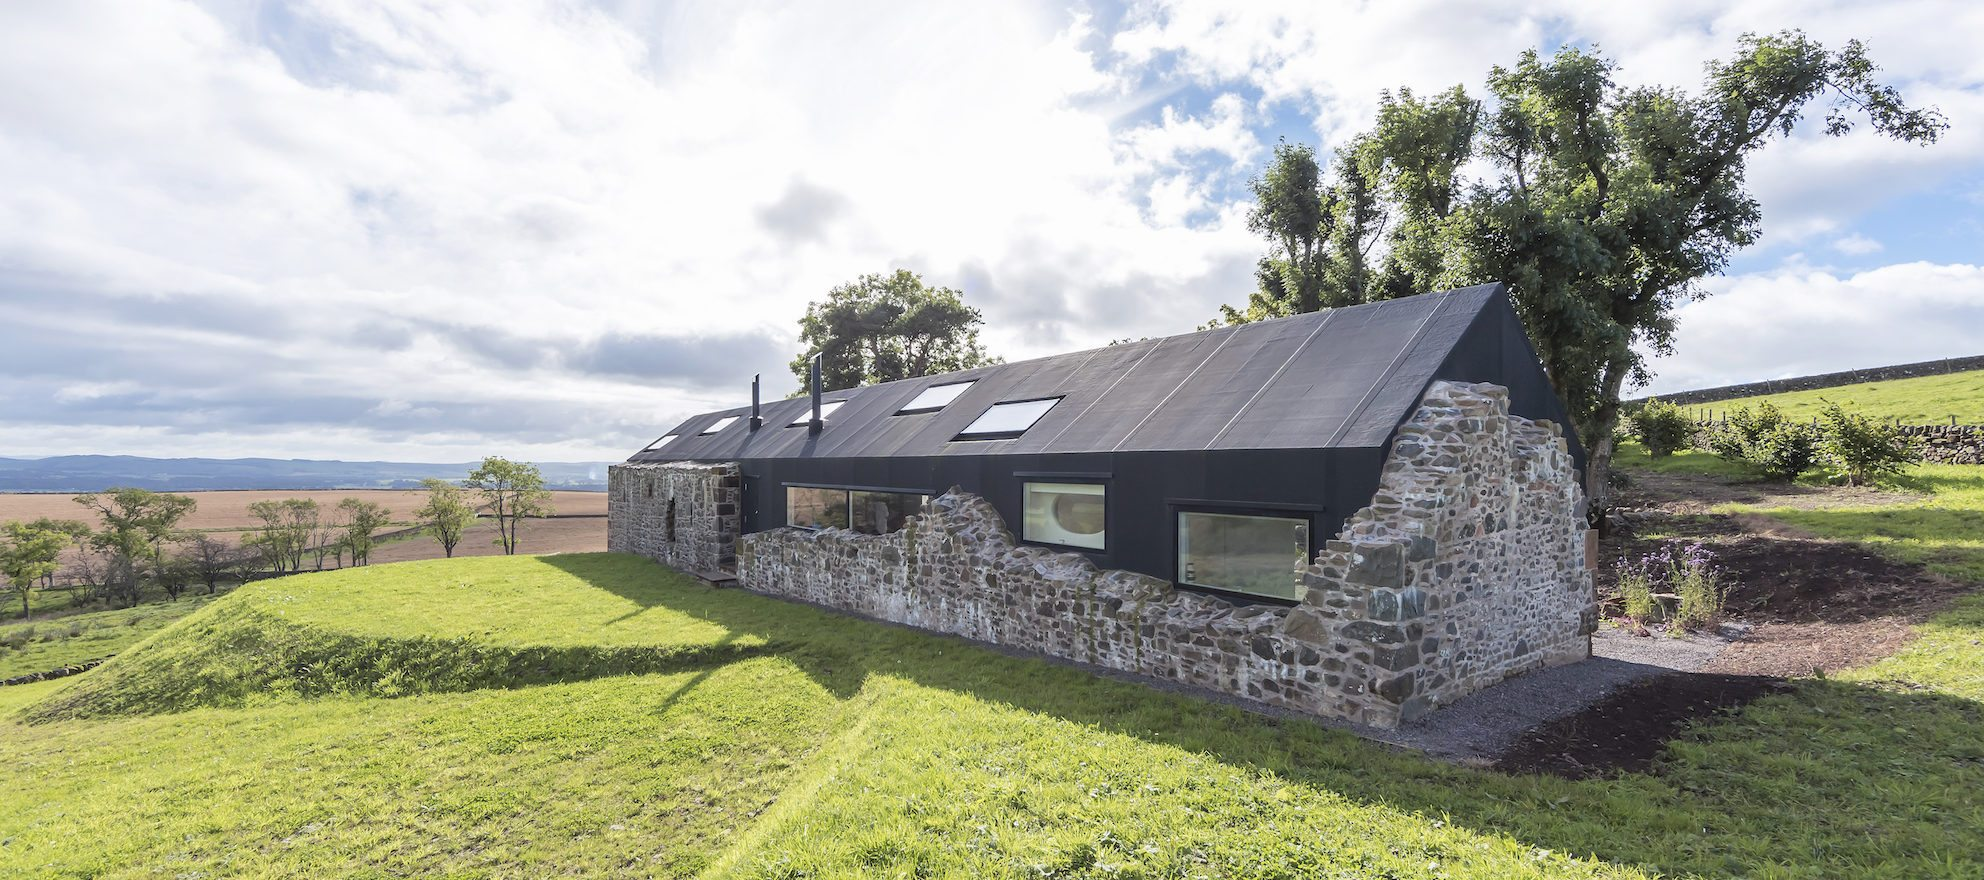 17th Century Scottish Farmhouse Reborn